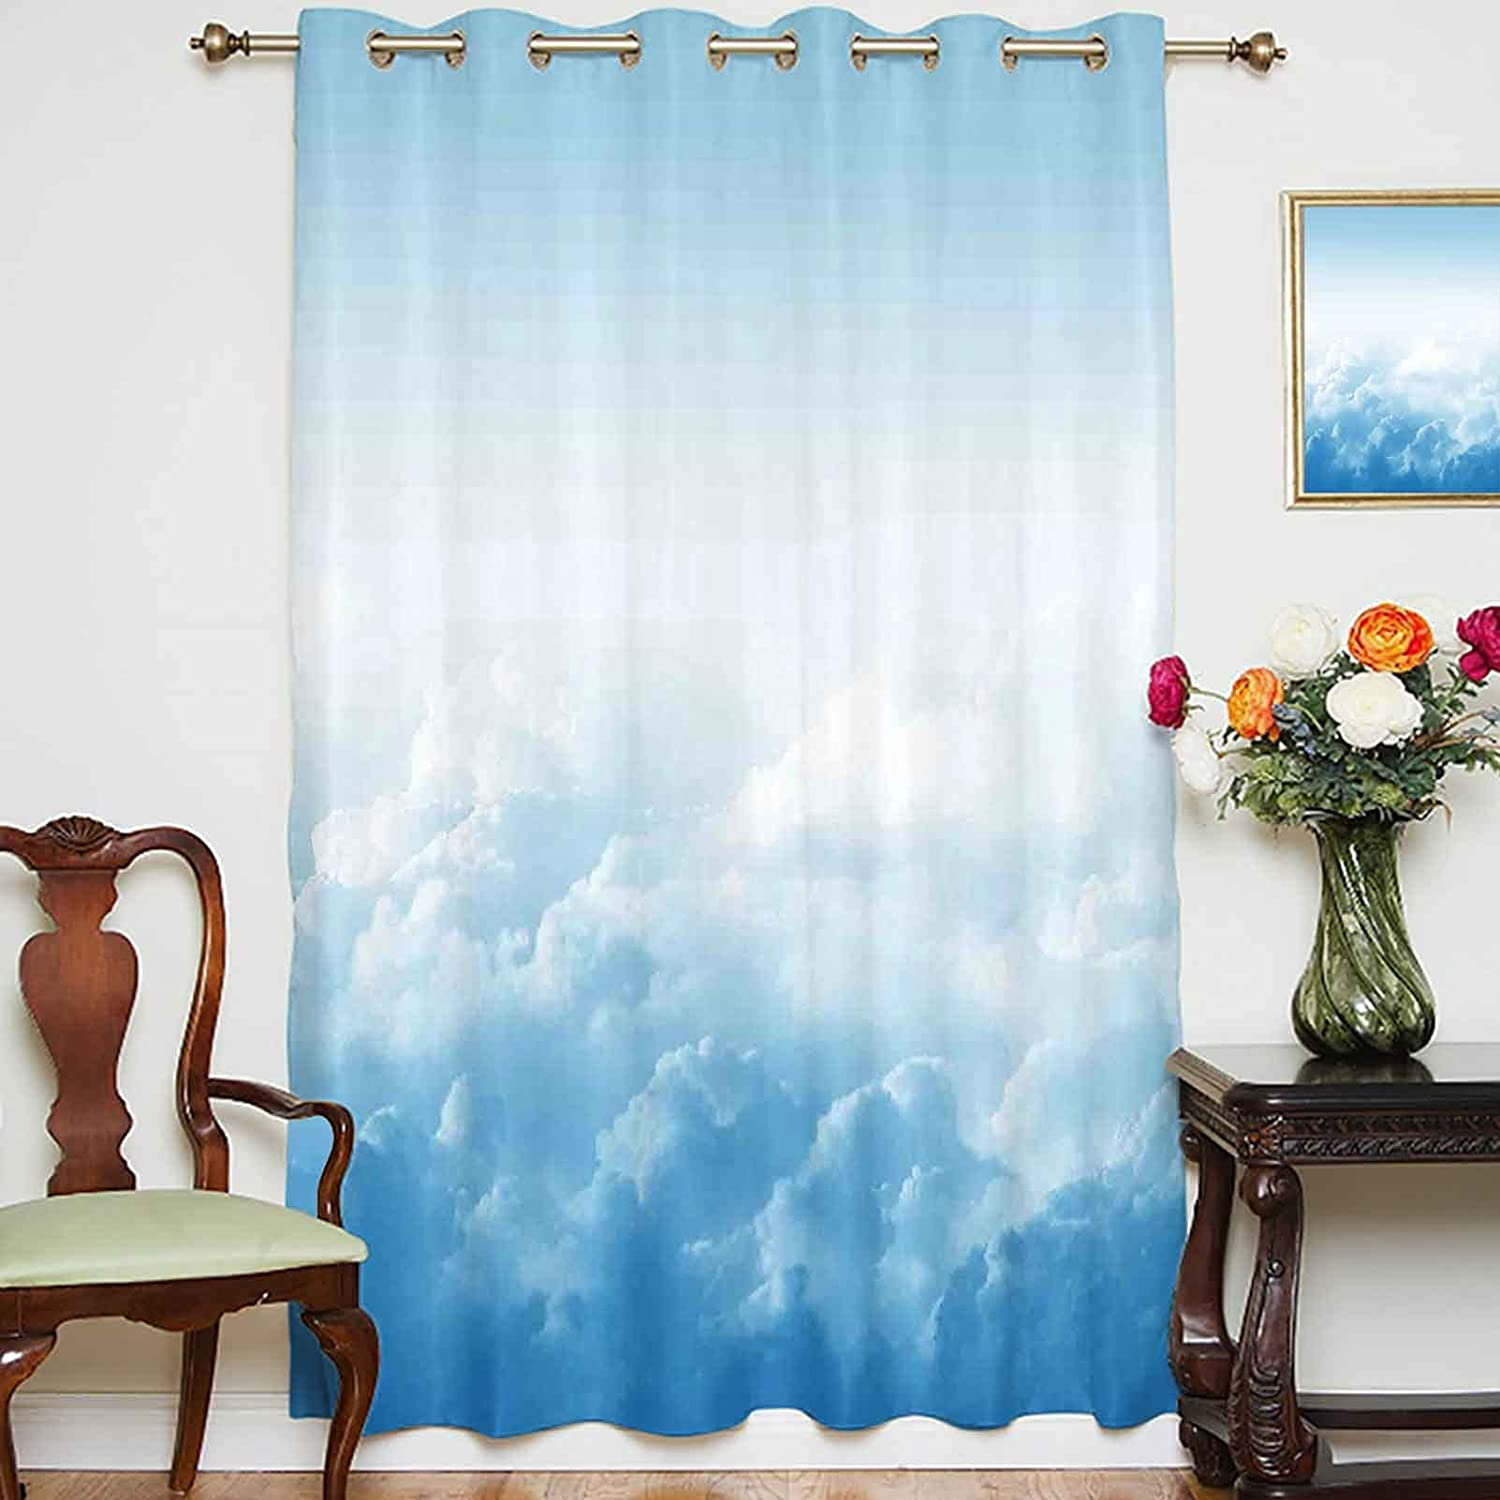 At the price of surprise oobon Blackout Shading Curtains Super sale Fluffy Clouds Ground Above High